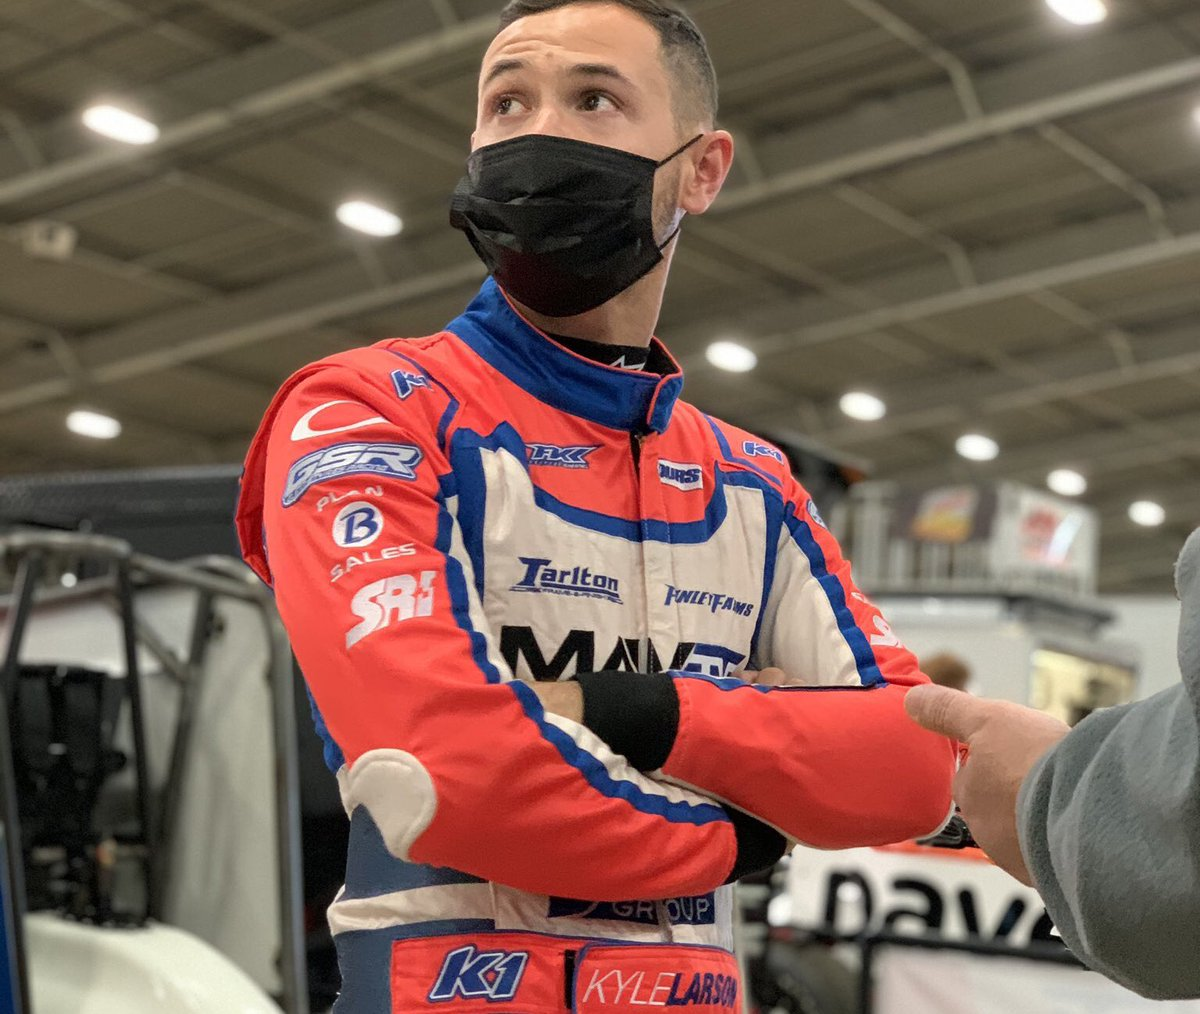 #ChiliBowl2021: Larson dominates for 2nd Career Chili Bowl win.  More:   #ChiliBowlNationals | #KyleLarson